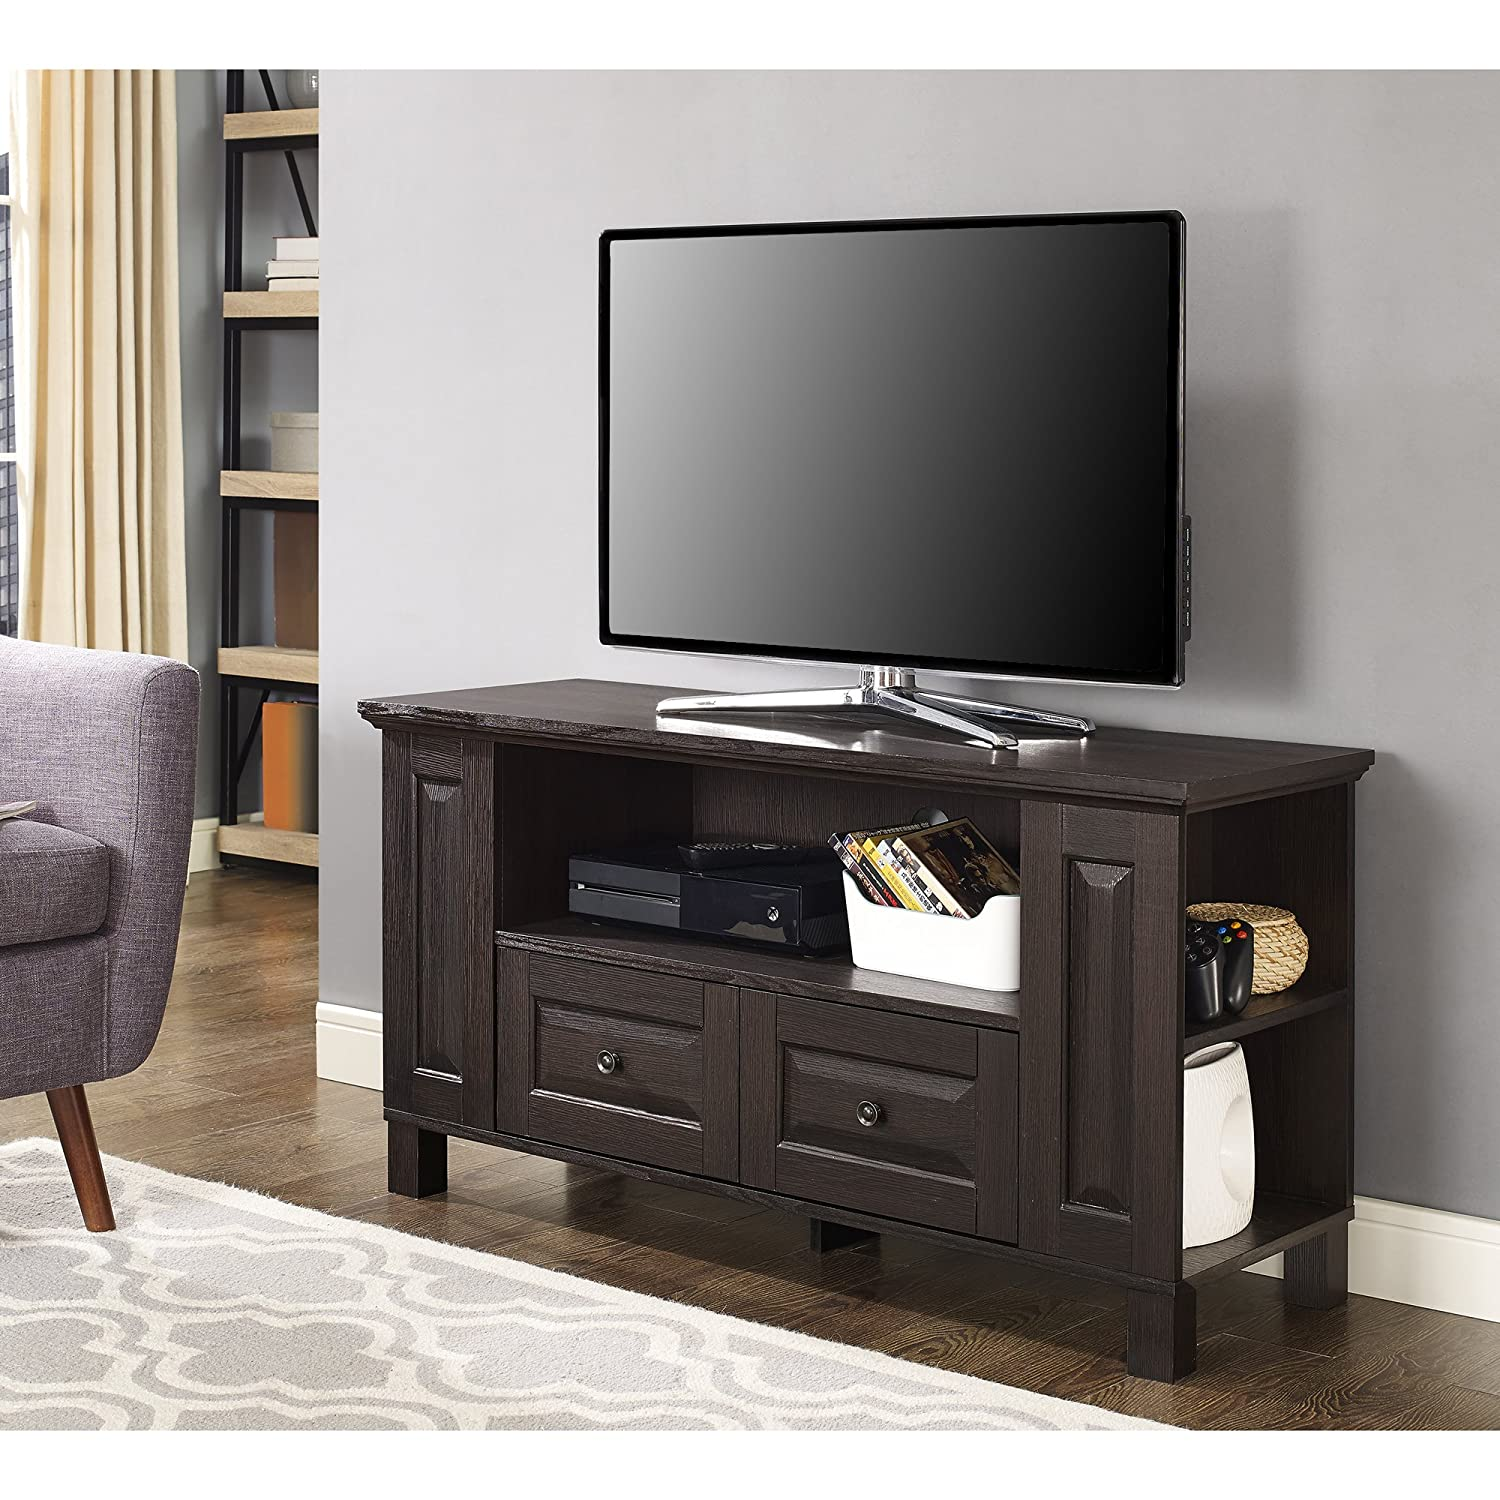 WE Furniture Traditional Wood Universal Stand with Storage Drawers for TV s up to 50 Flat Screen Living Room Entertainment Center, 44 , Espresso